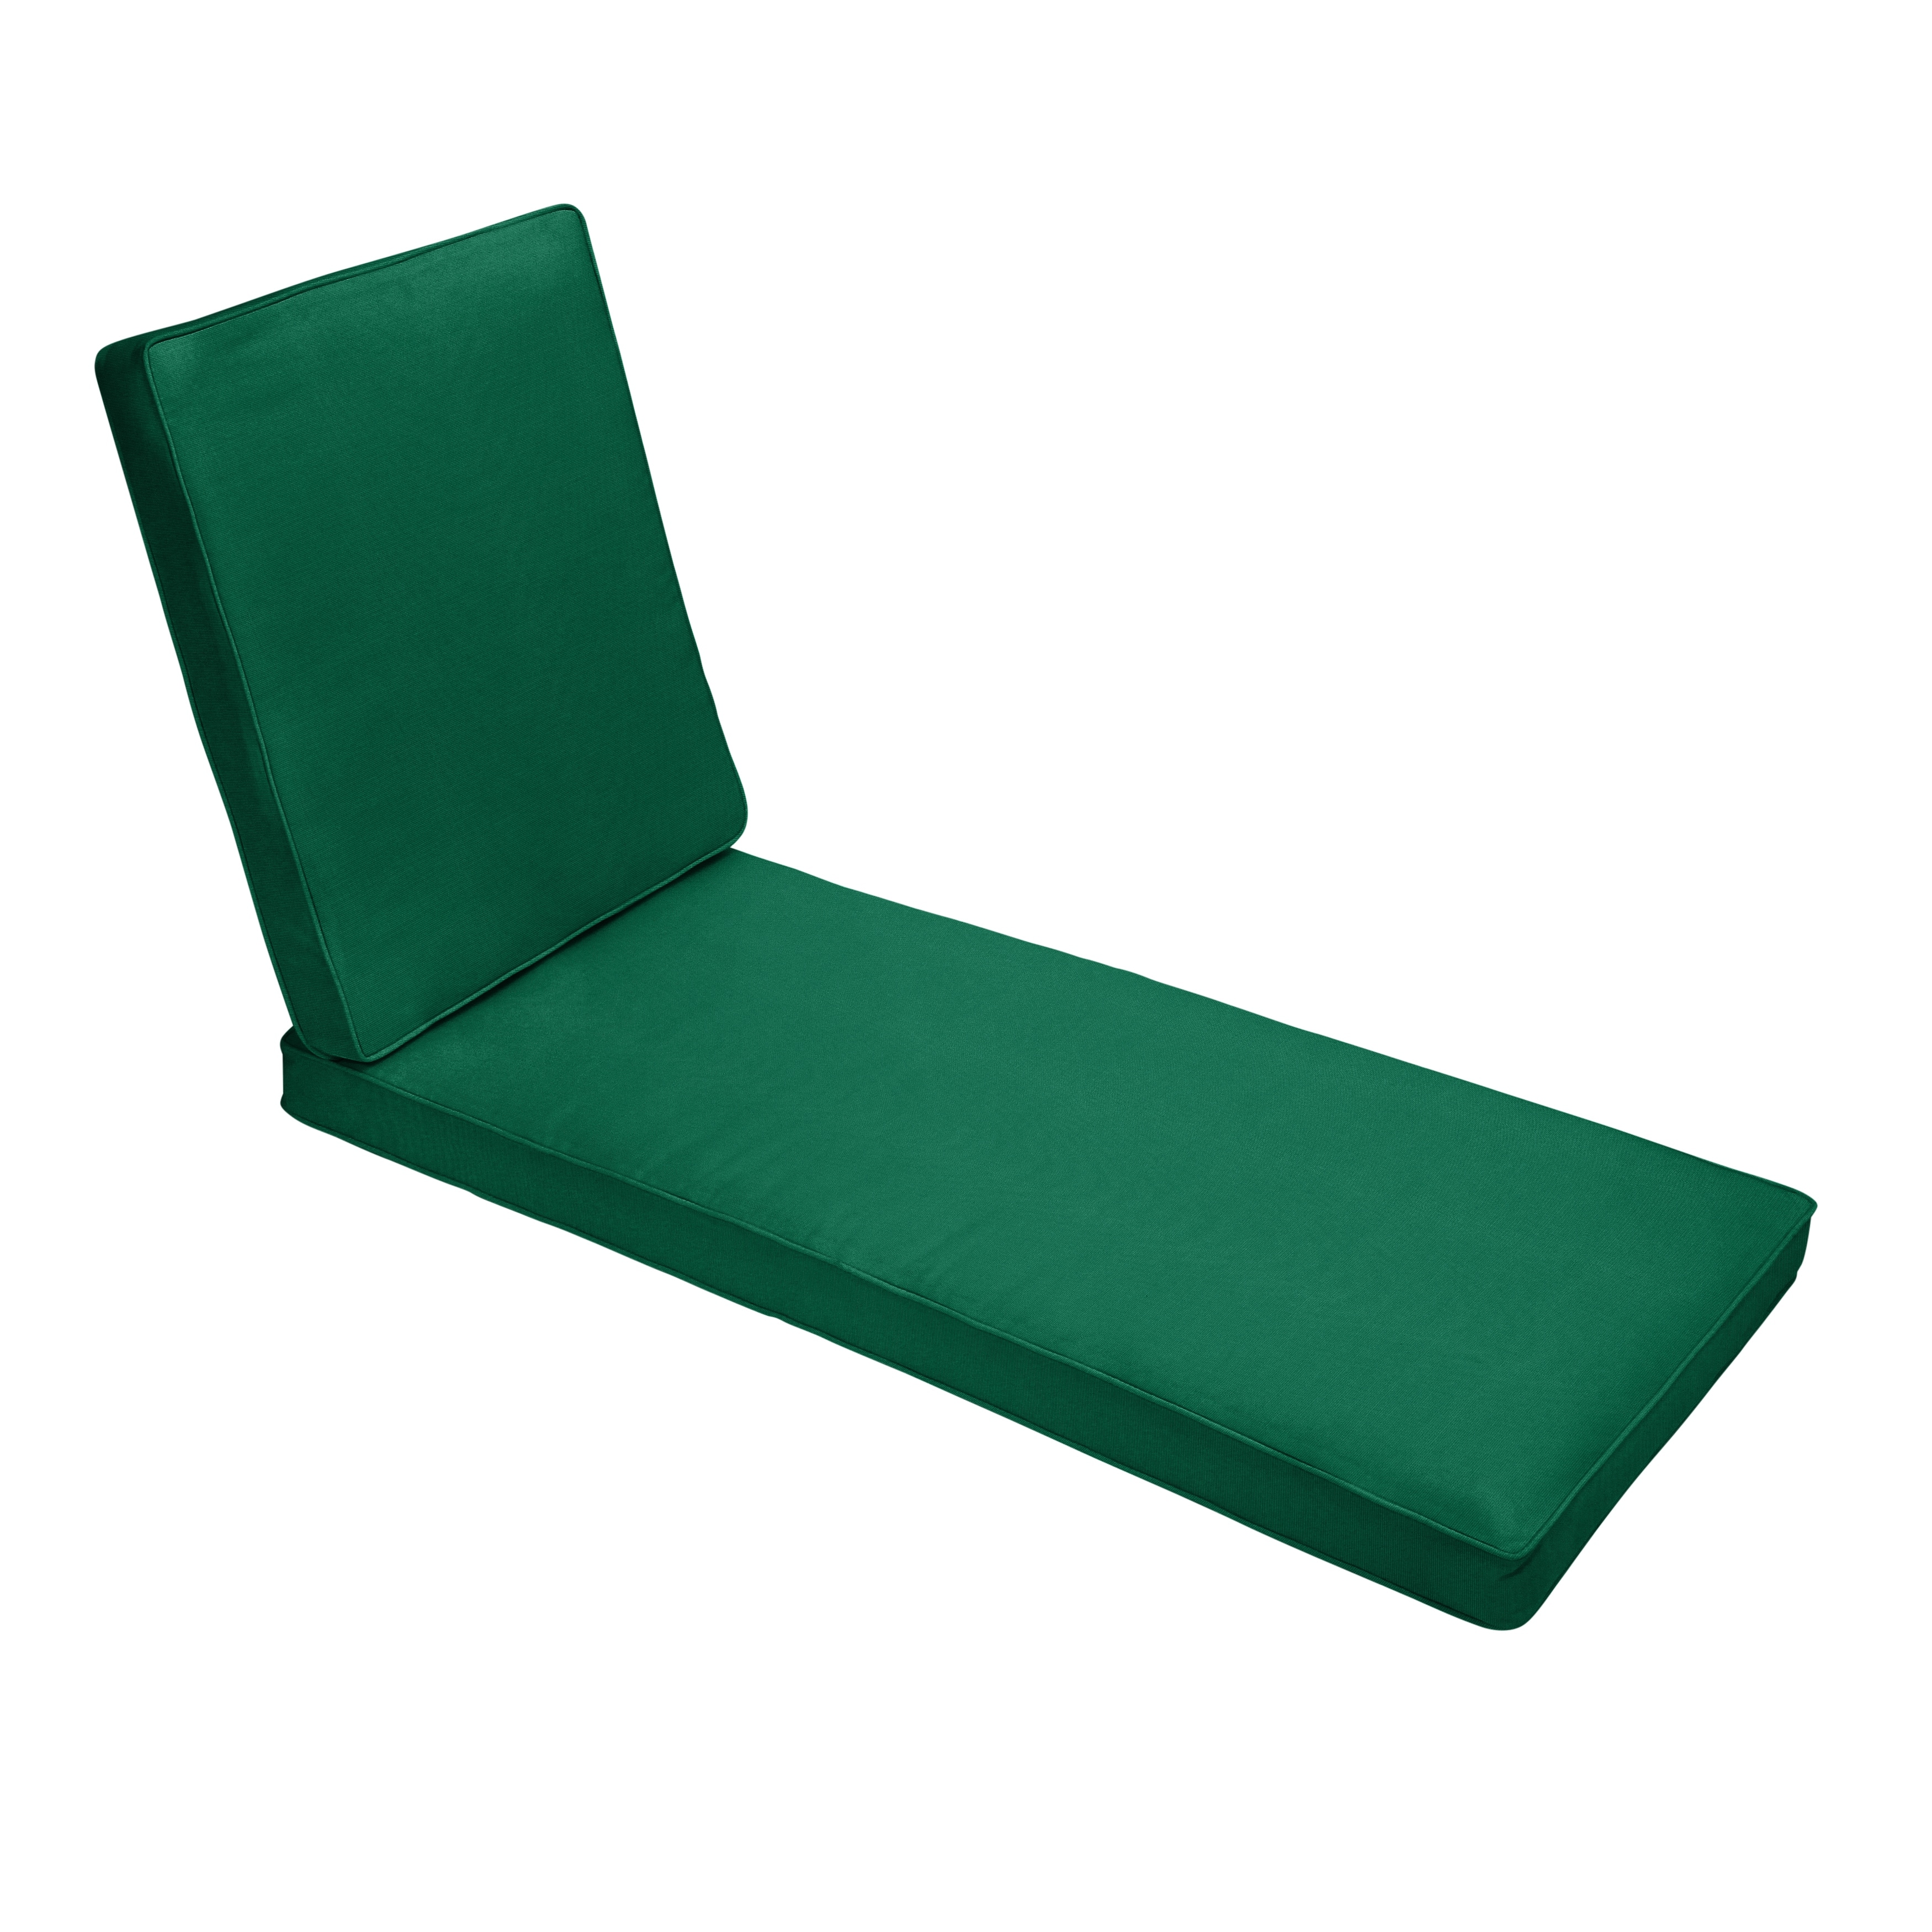 Indoor Outdoor 25 Wide Chaise Lounge Cushion With Sunbrella Fabric Solid Bright